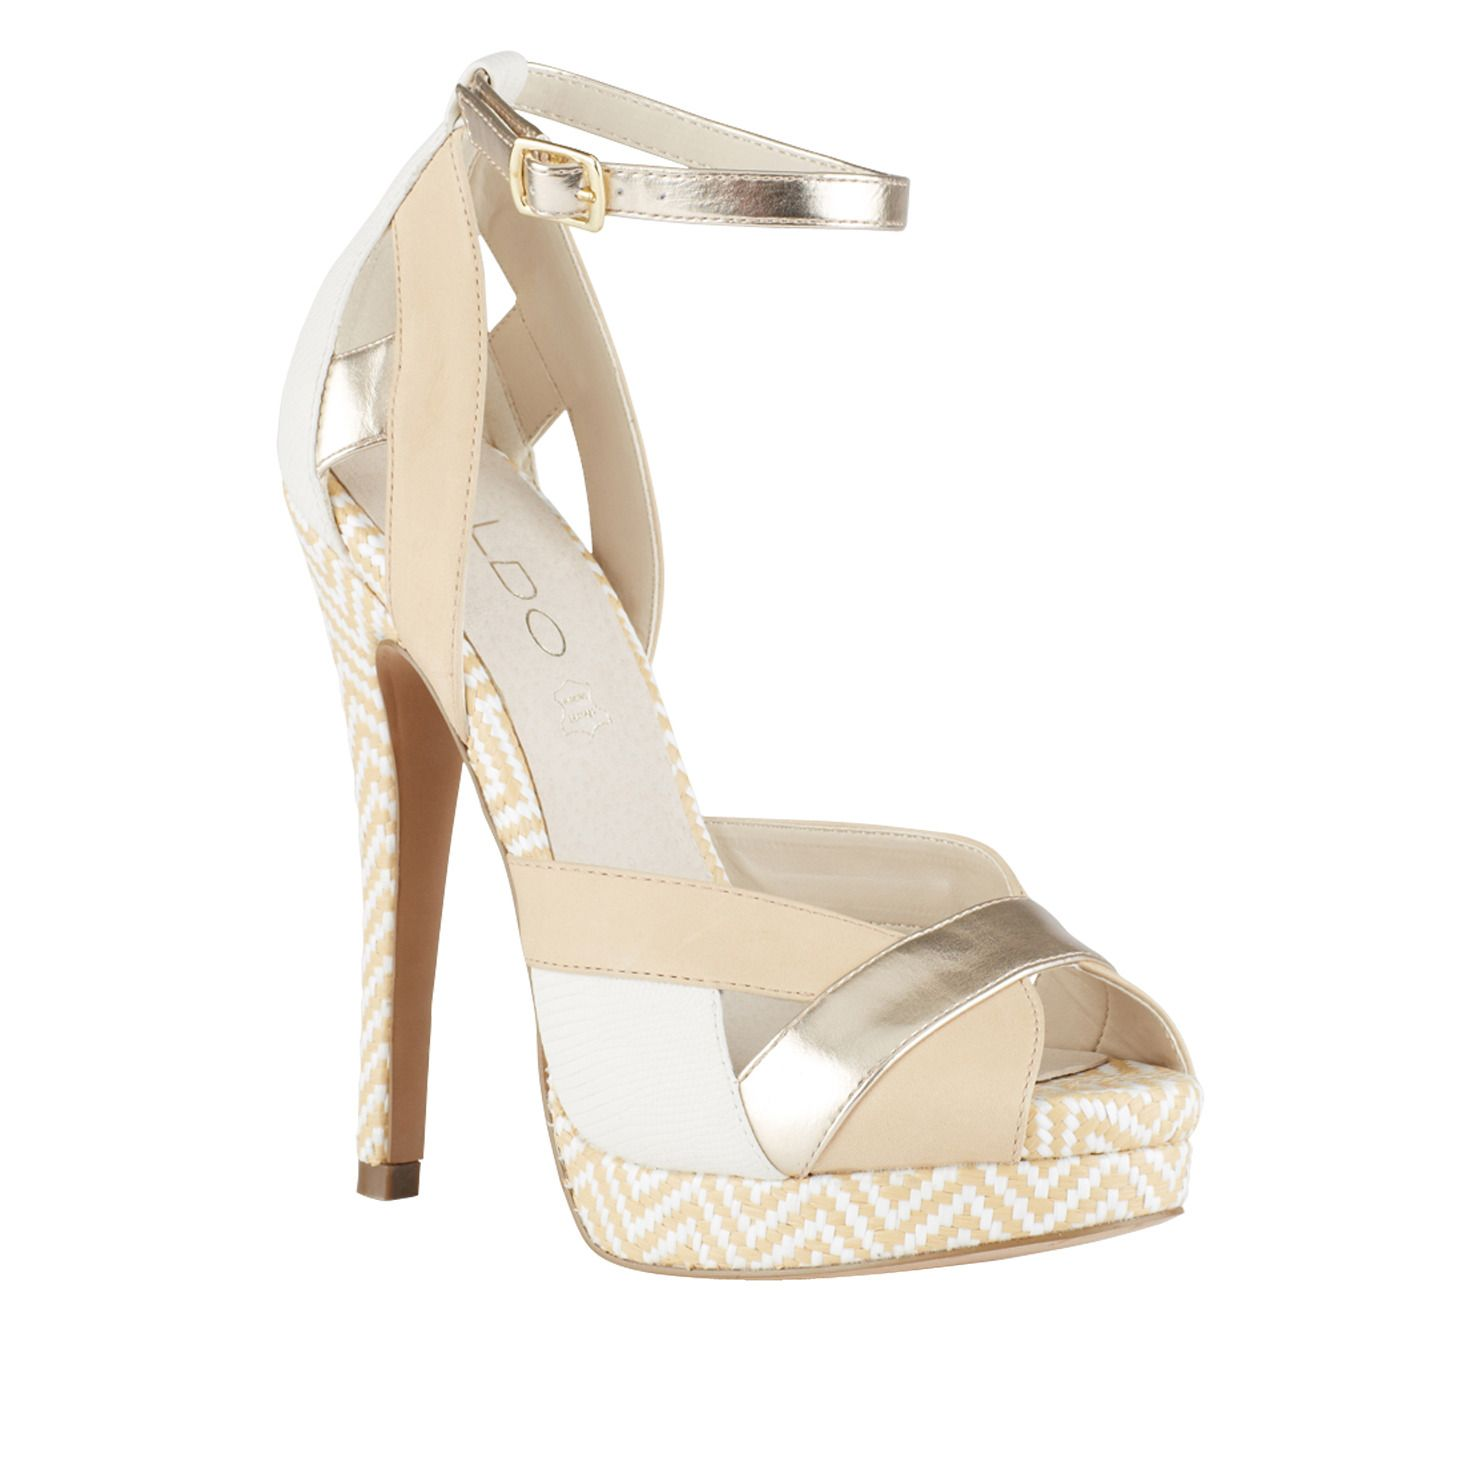 682da37ef690 LOVOLO - women s high heels sandals for sale at ALDO Shoes. --- I am  definitely getting these!